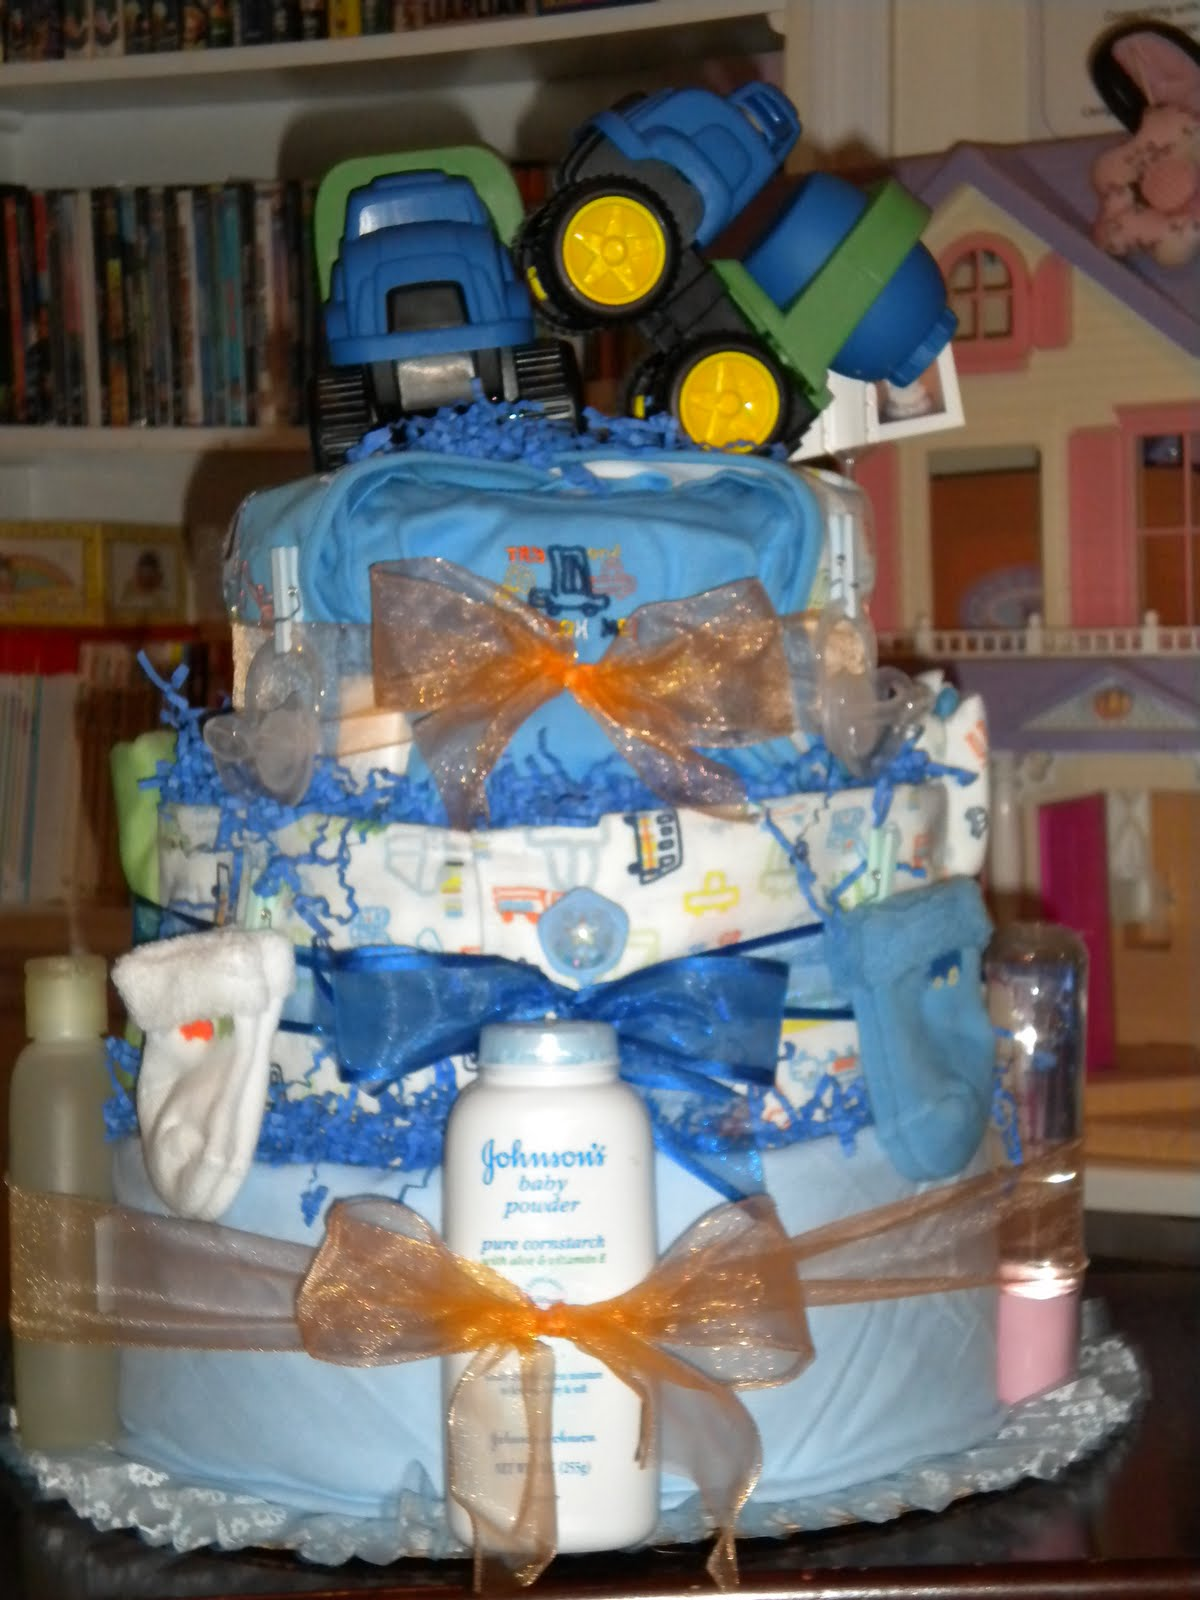 Incredible Homemade Delights Construction Diaper Cake For